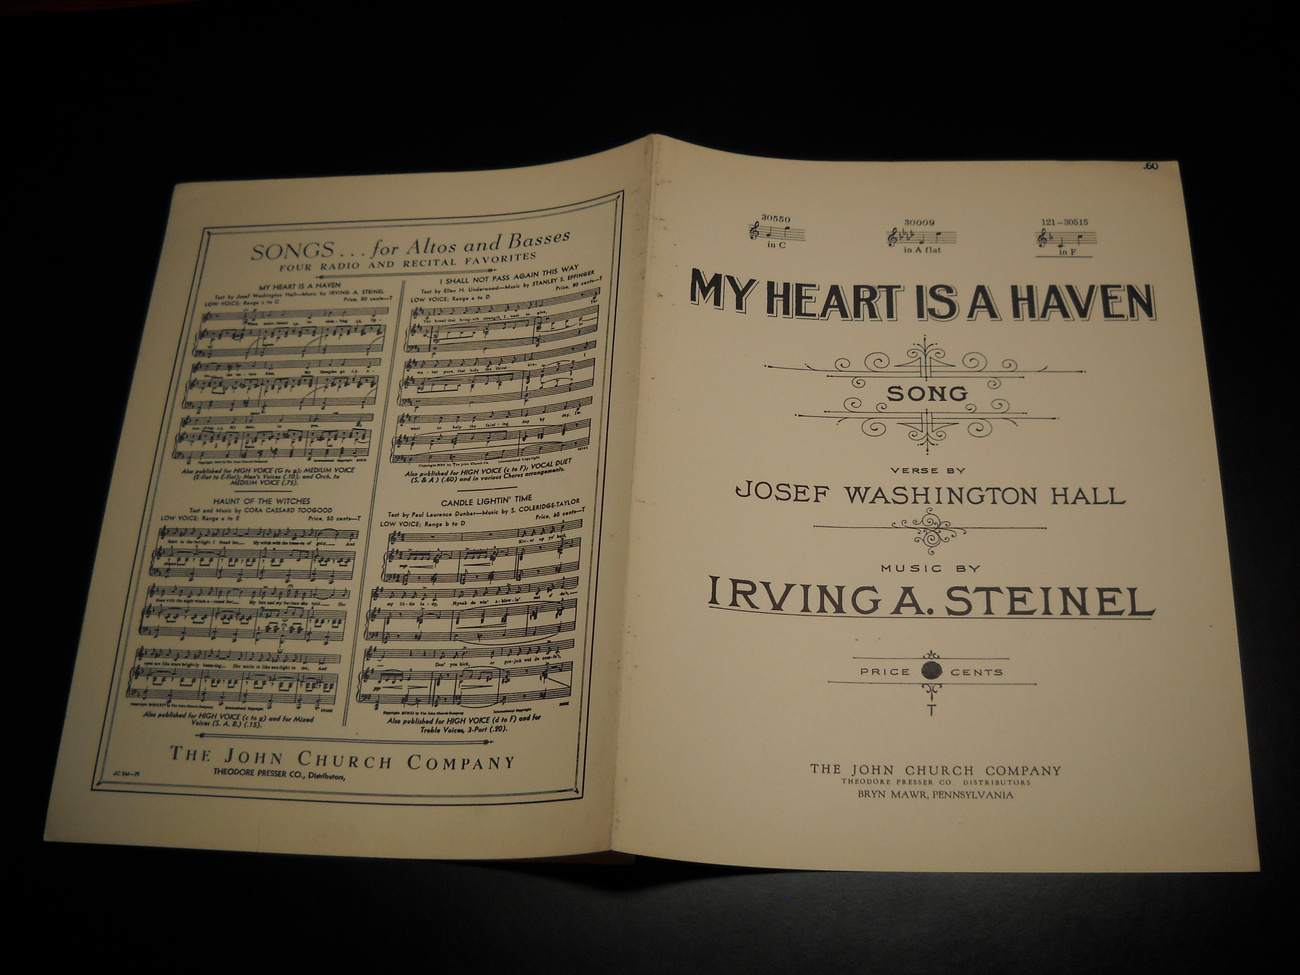 Sheet_music_my_heart_is_a_haven_josef_washington_hall_irving_a_steinel_1933_john_church_04